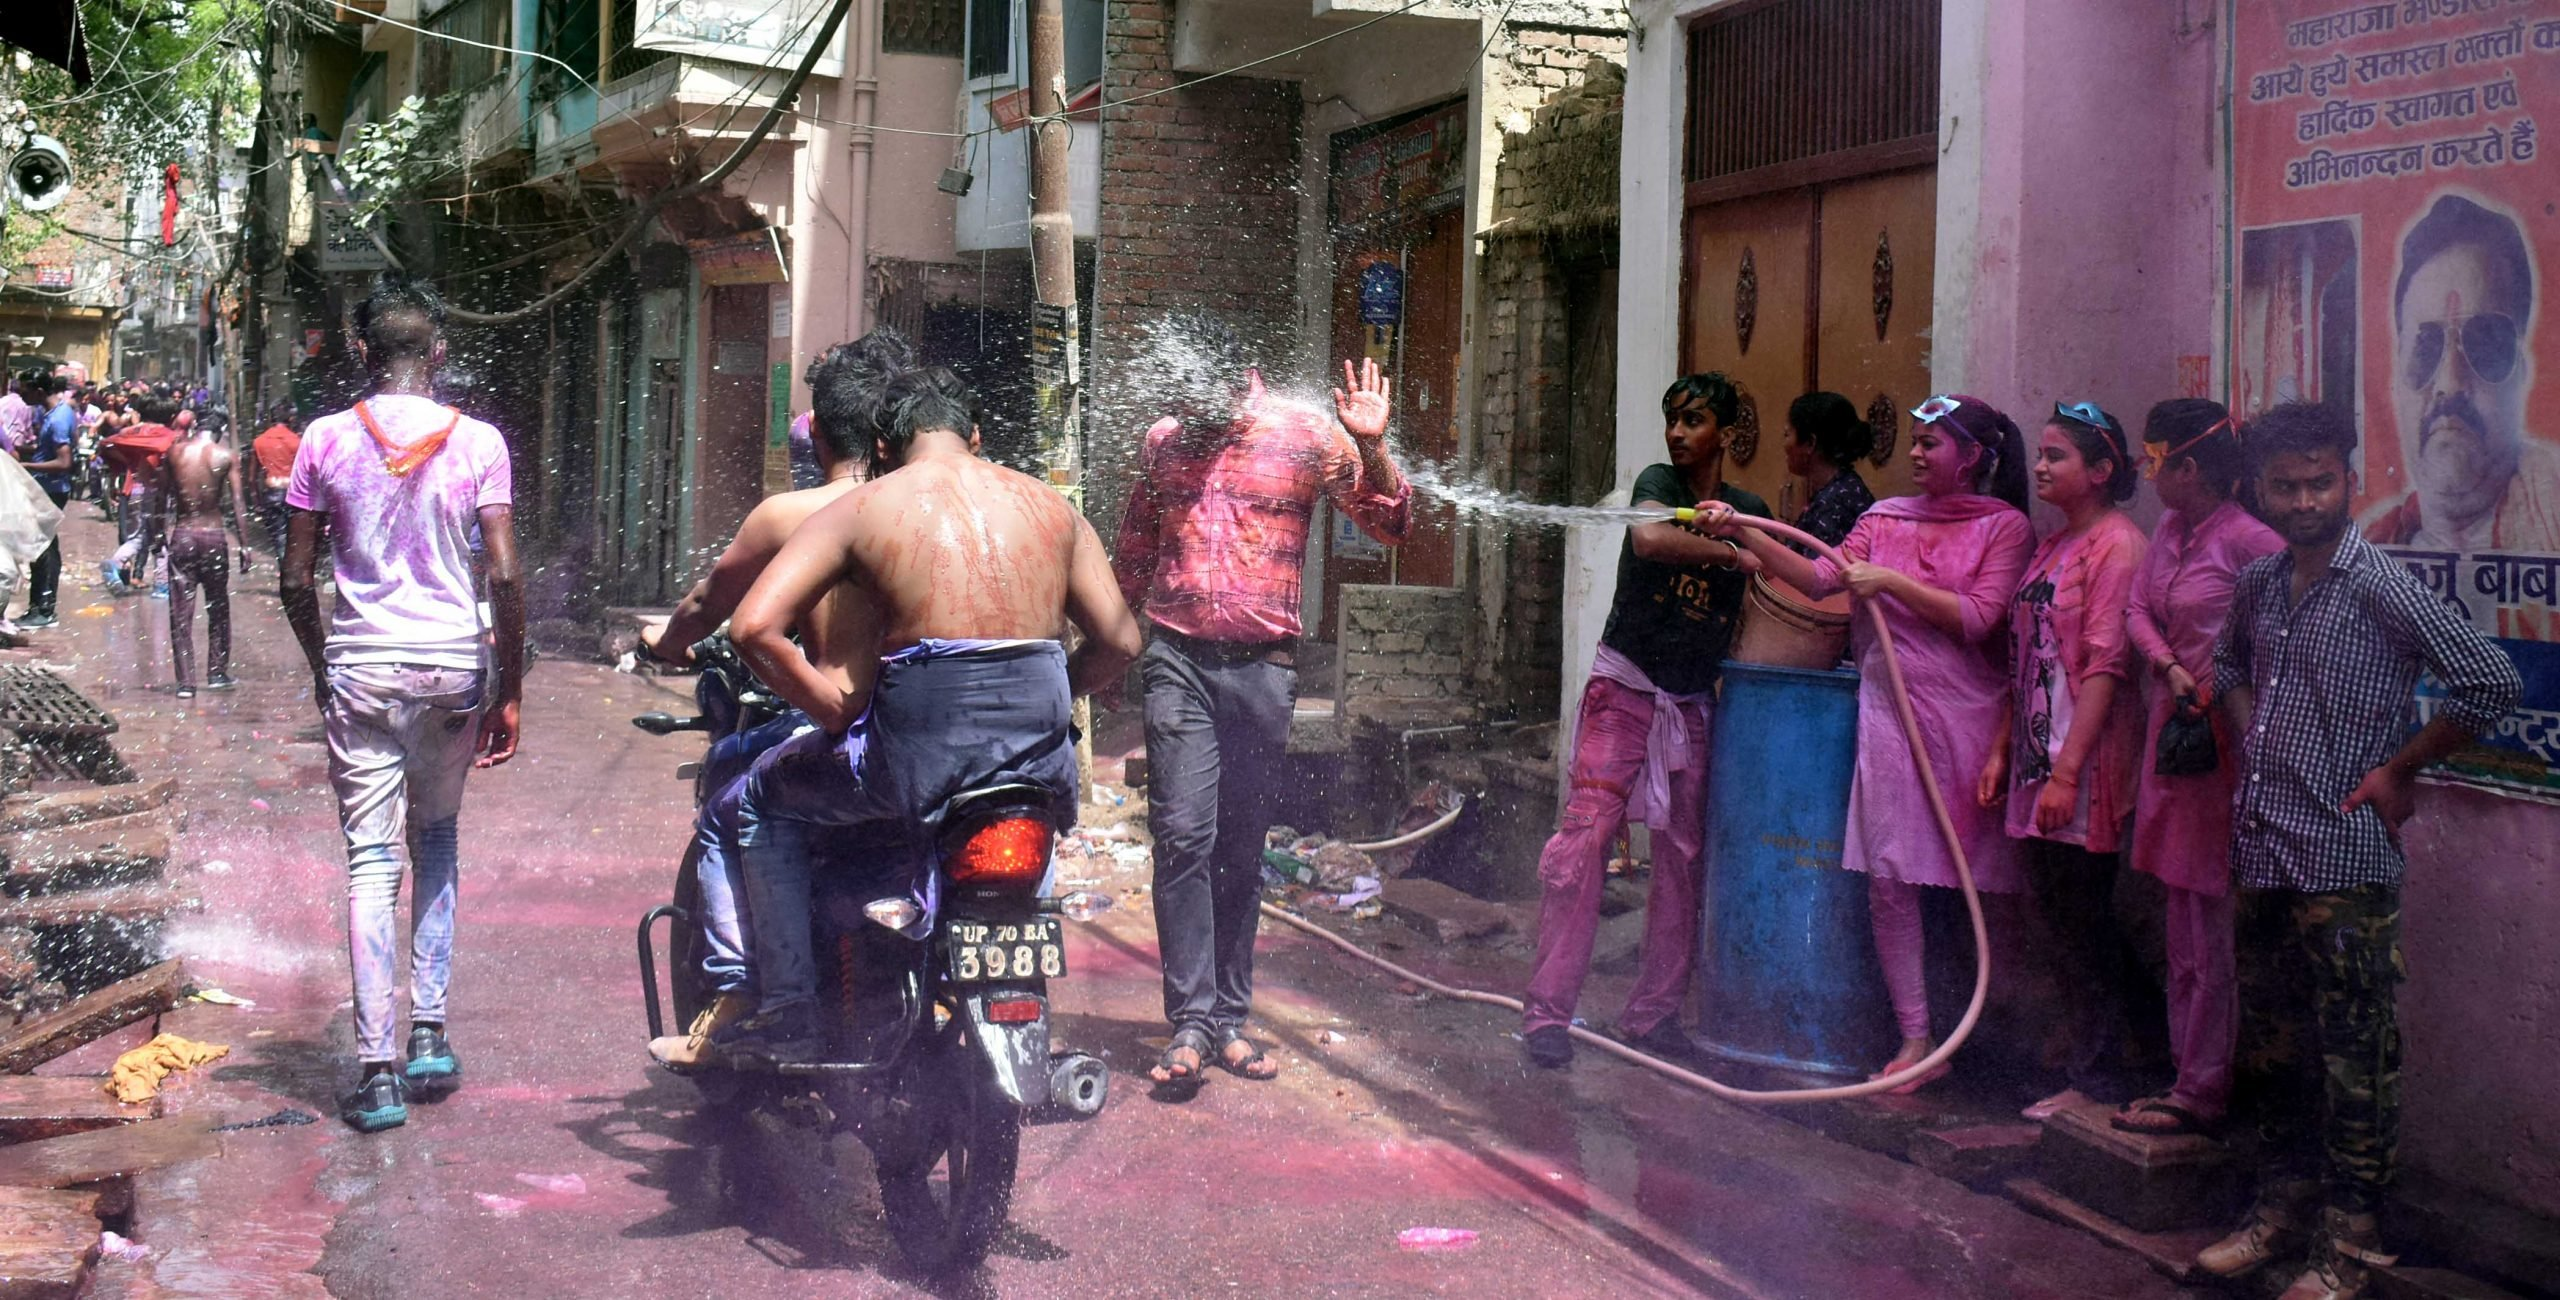 People celebrating Holi on street